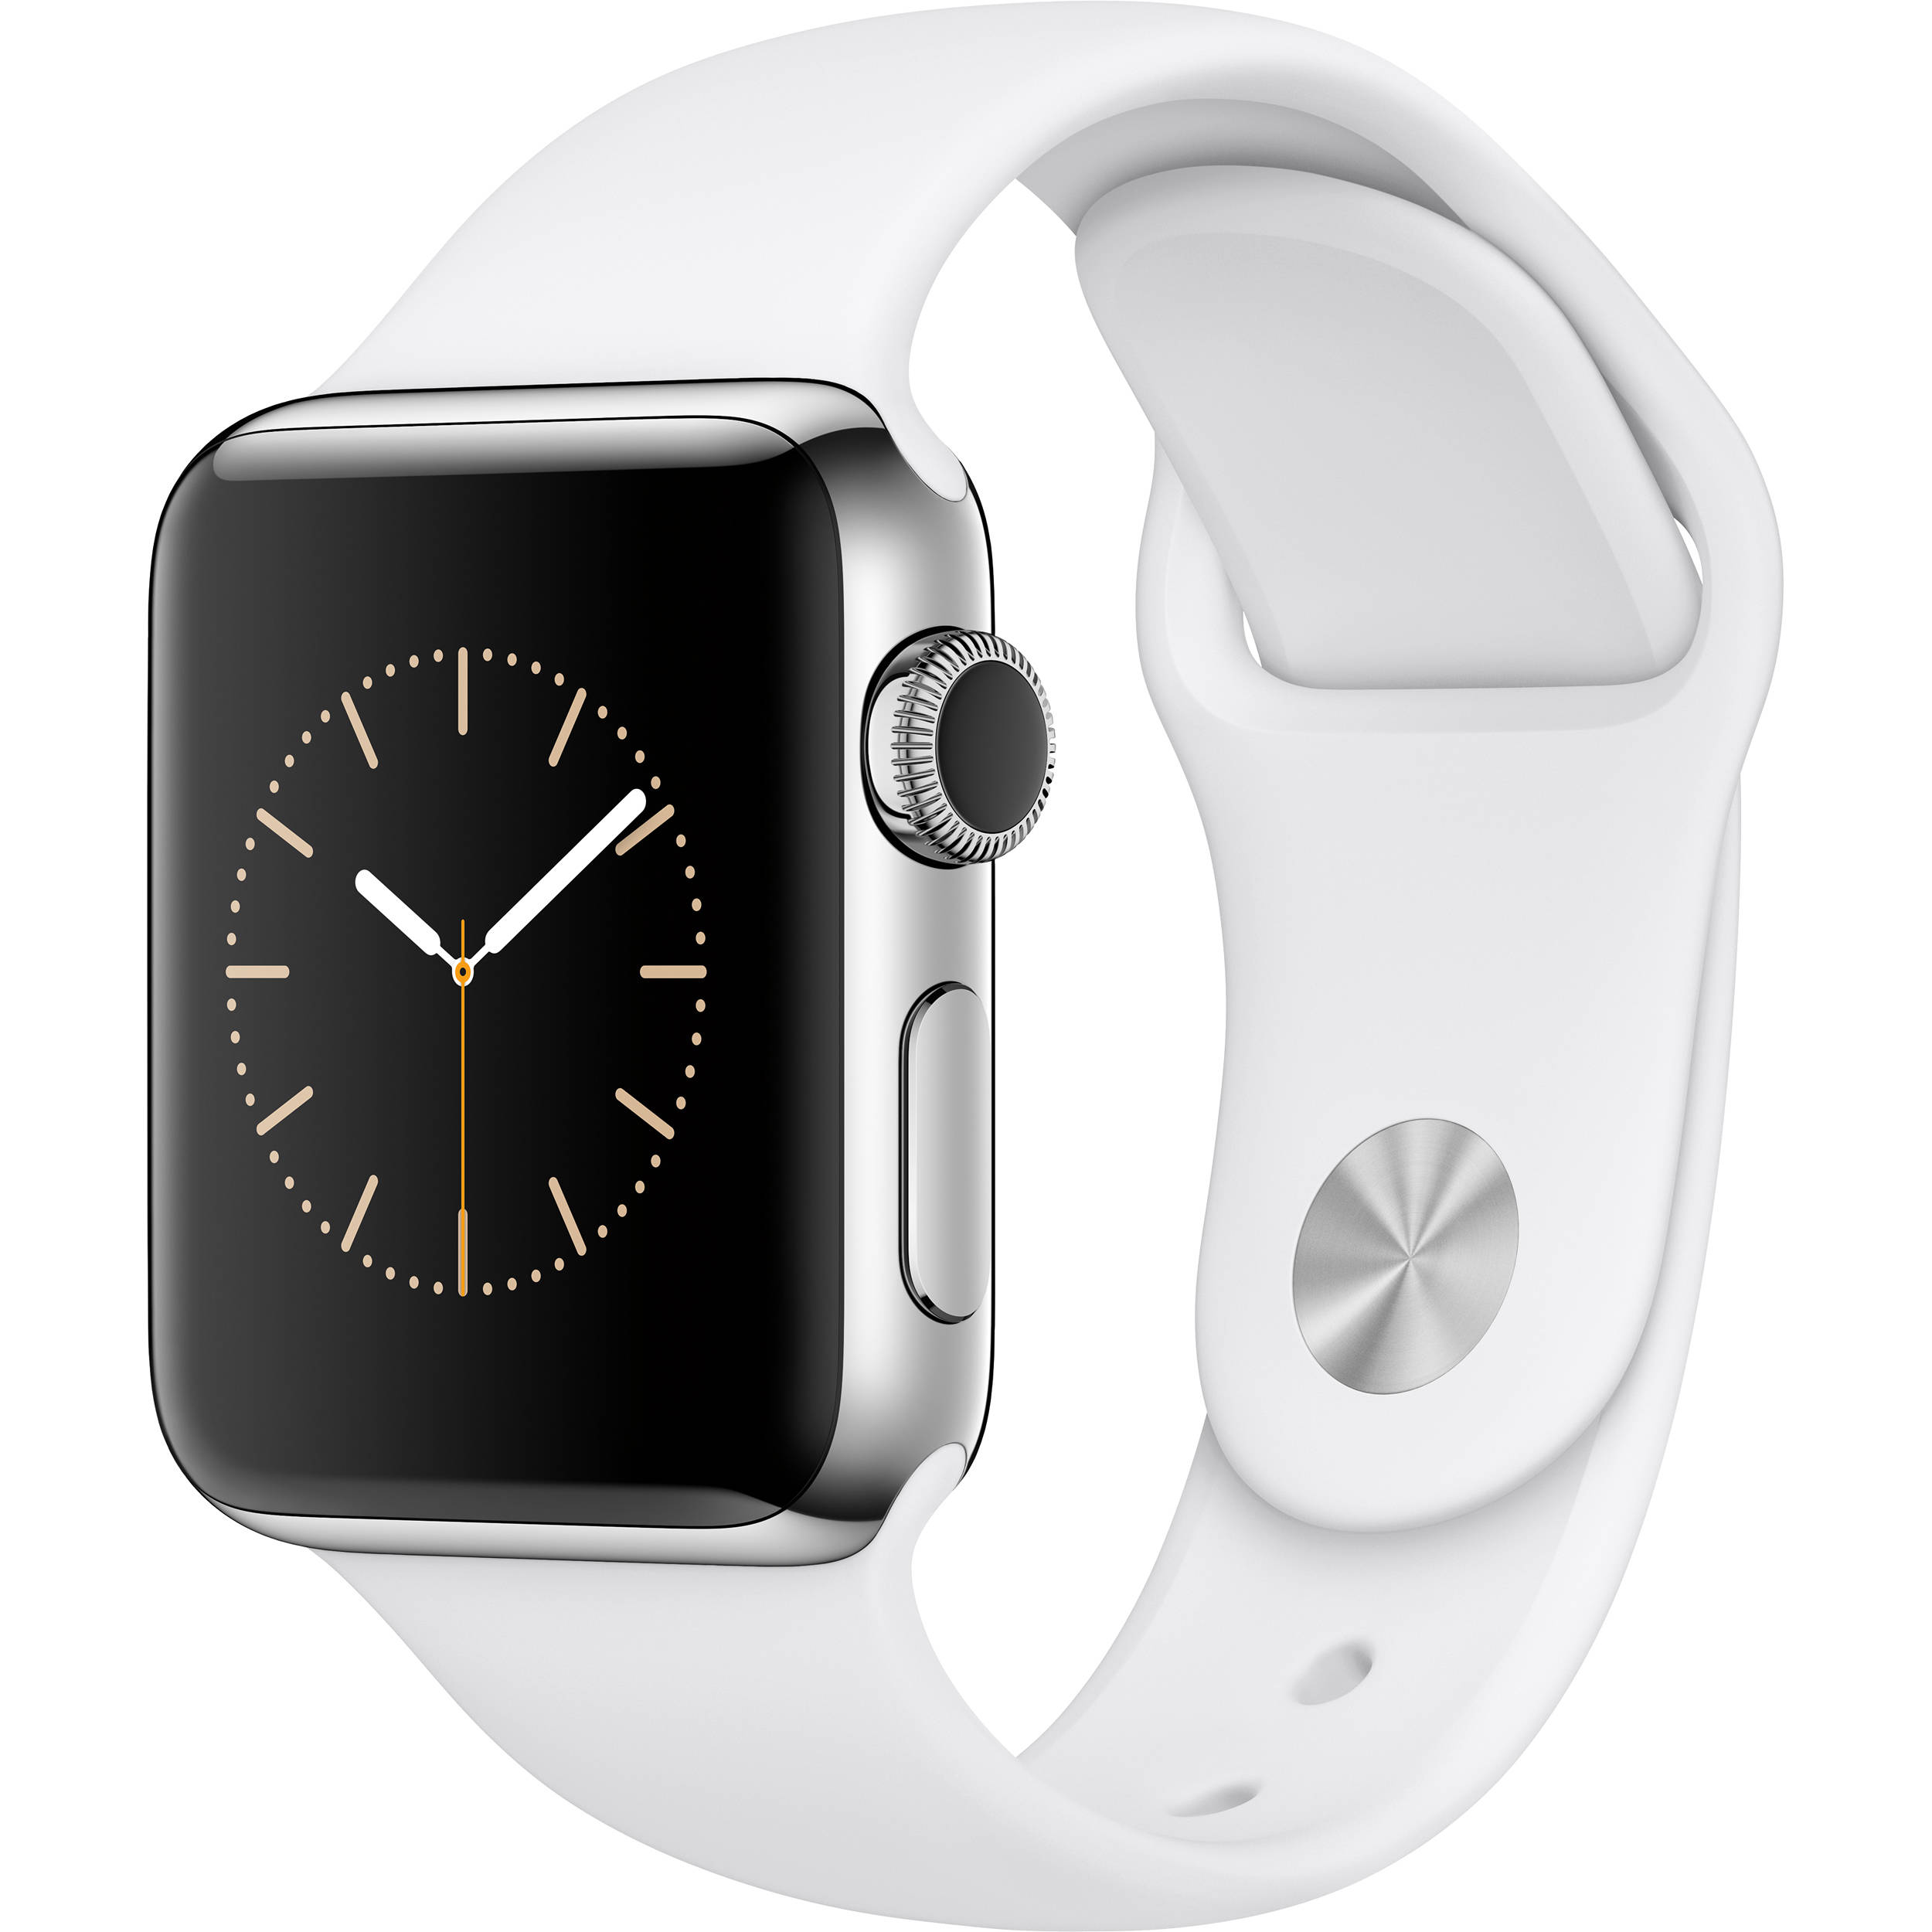 buy online 8f52a df176 Apple Watch Series 2 38mm Smartwatch ( Stainless Steel Case, White Sport  Band)